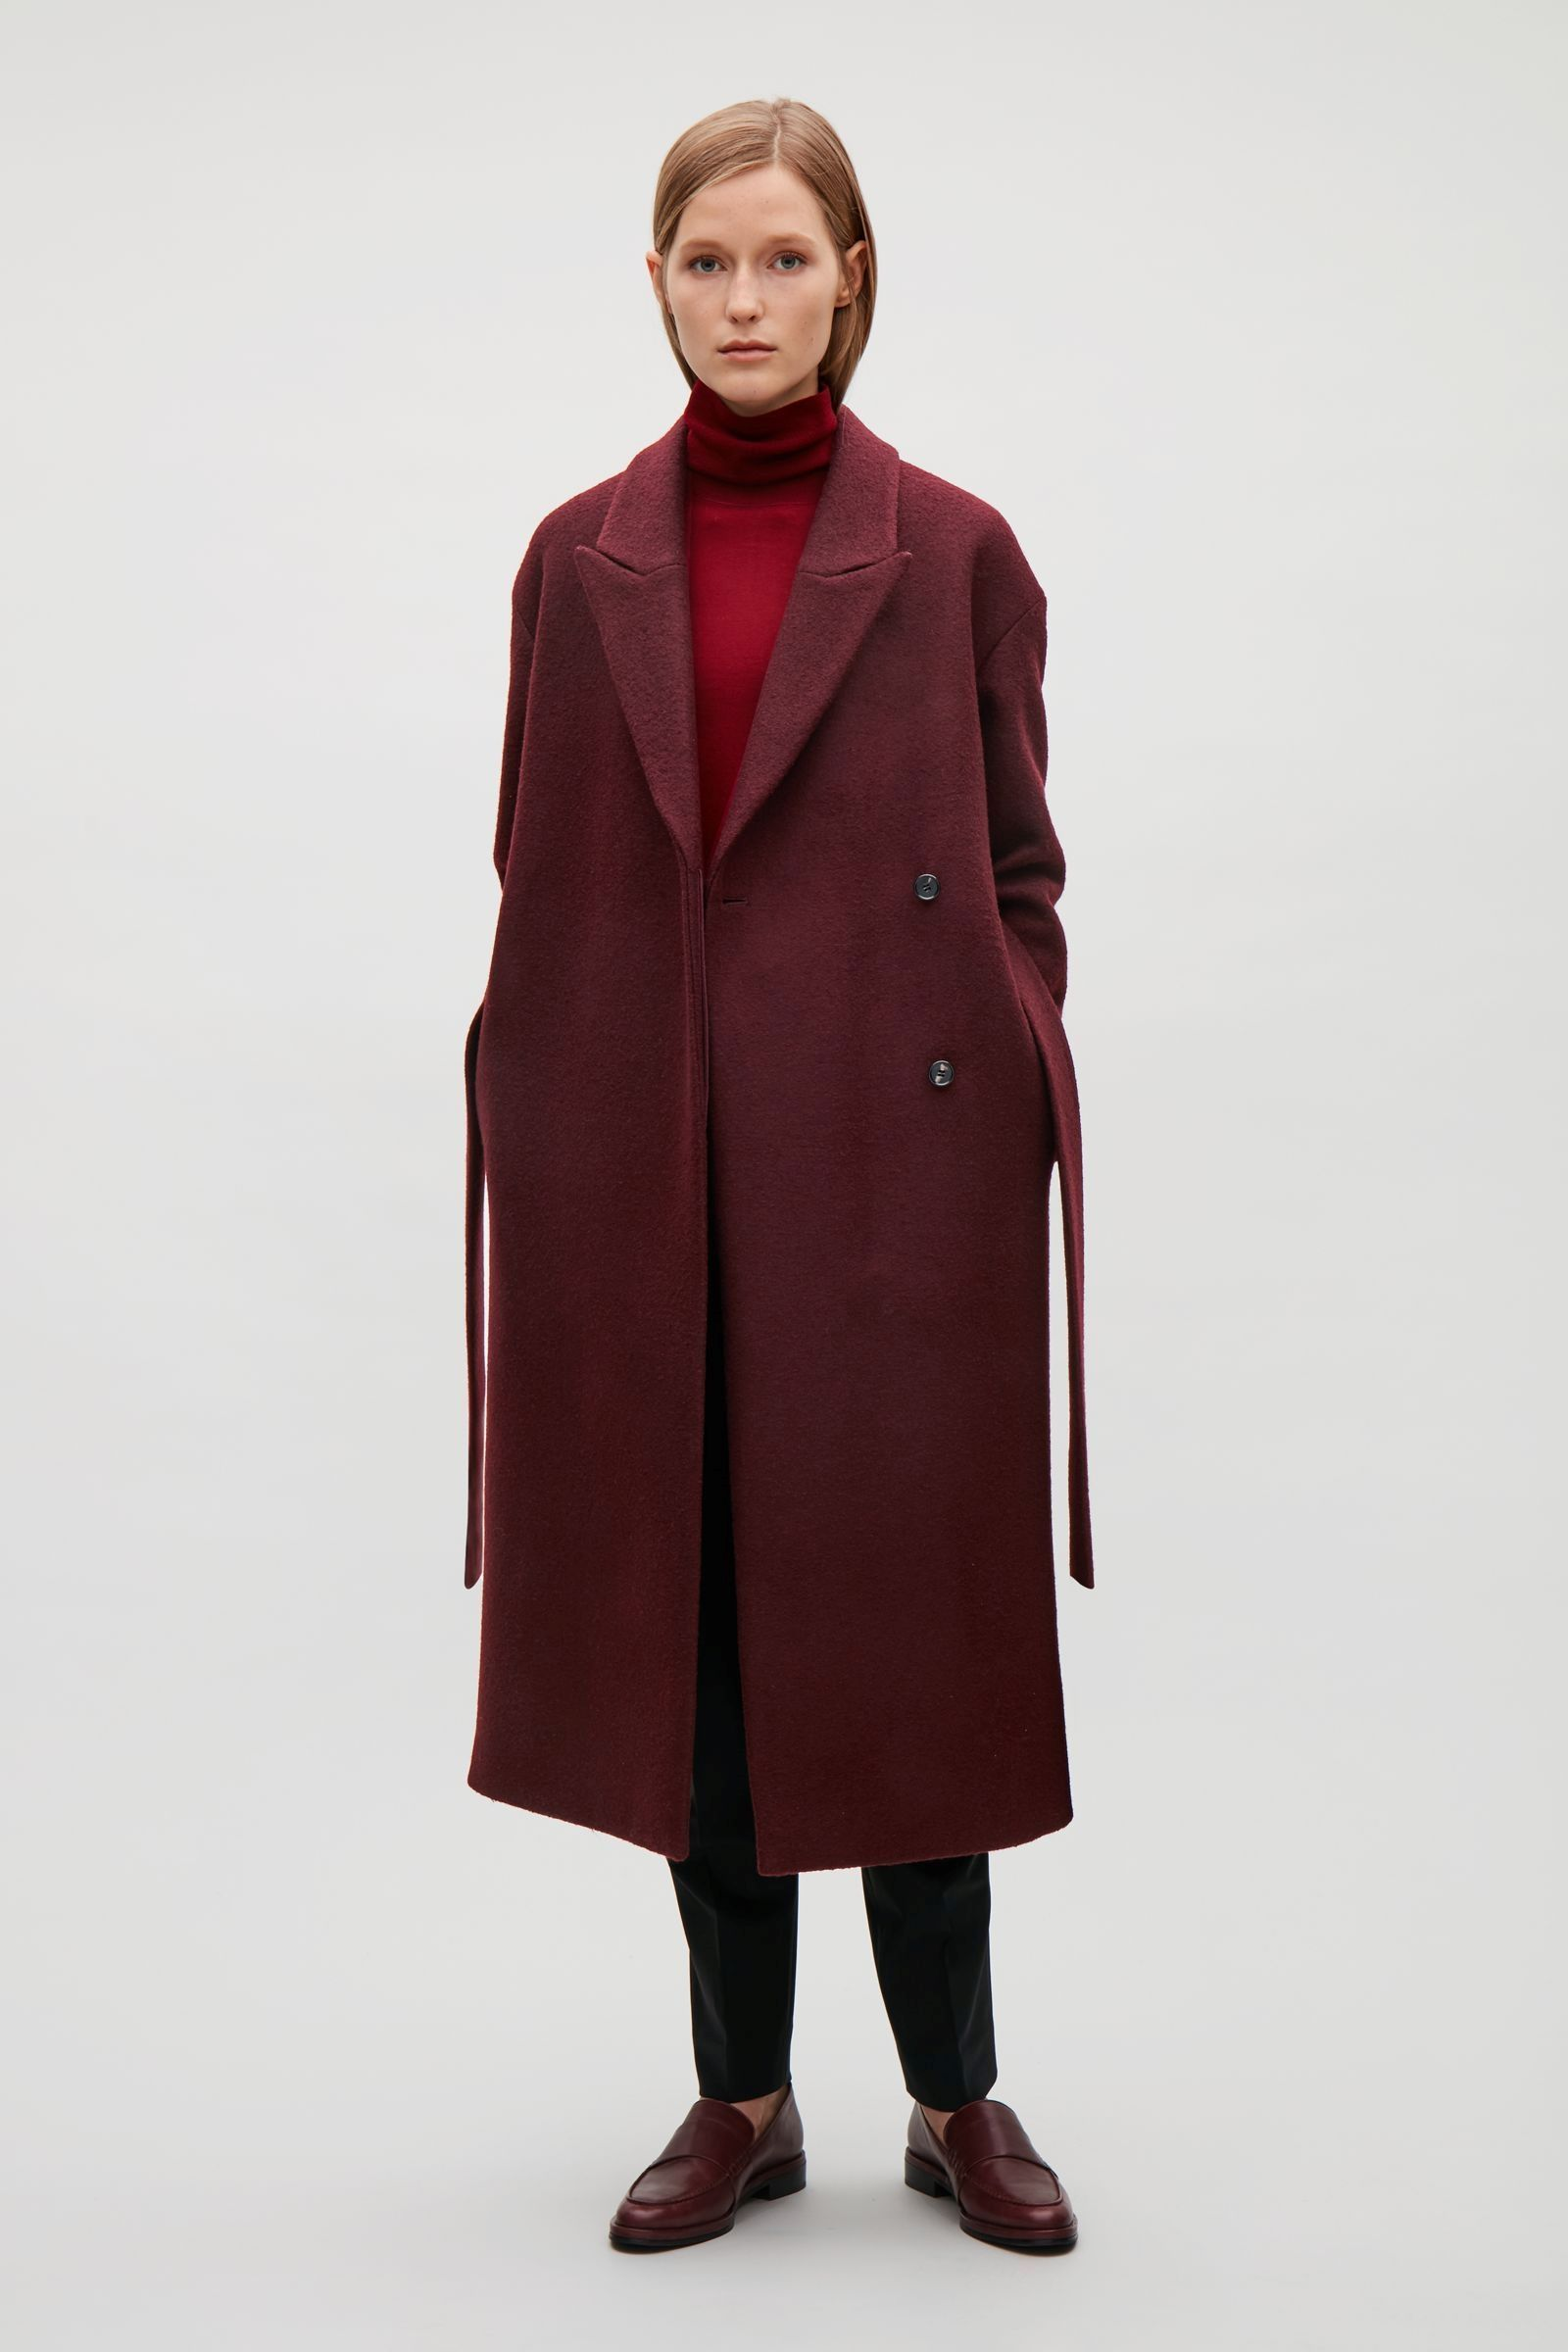 bff263478f COS image 14 of Belted wool coat in Burgundy